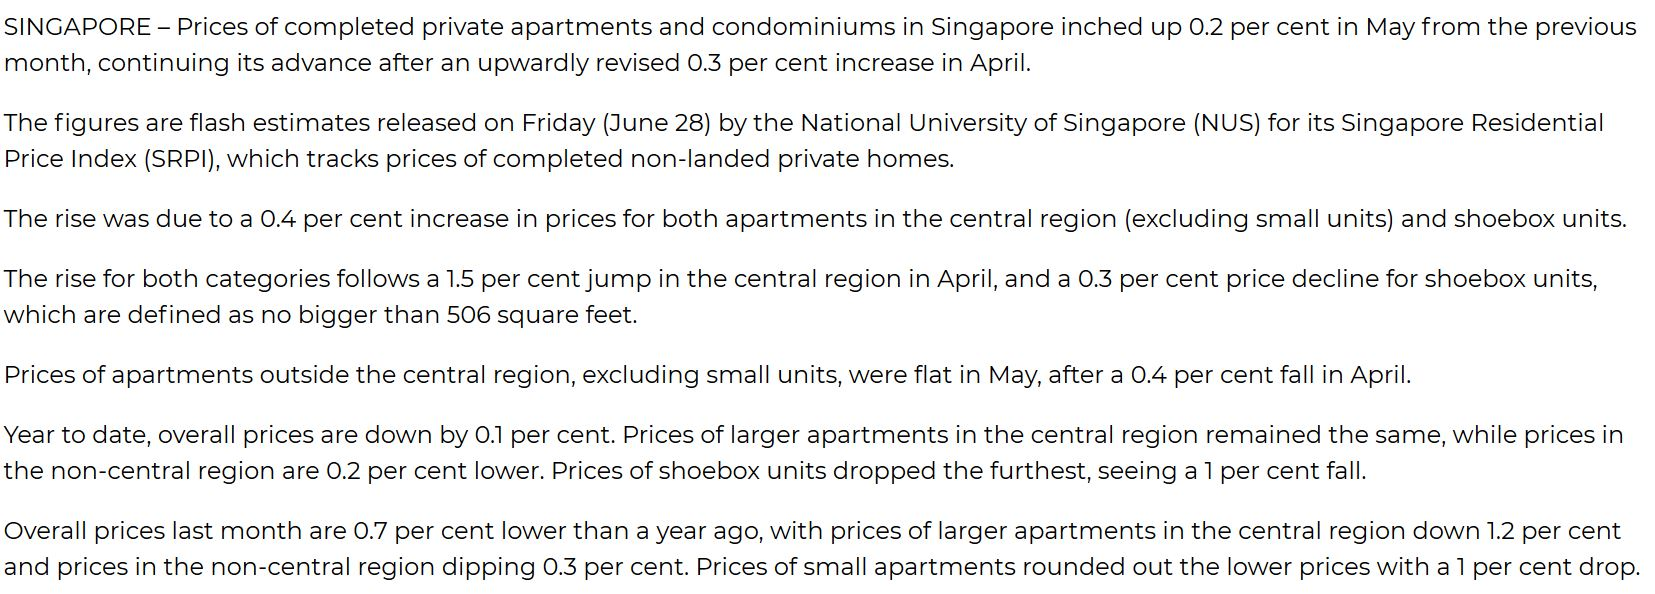 mayfair-modern-completed-condo-prices-up-article-singapore